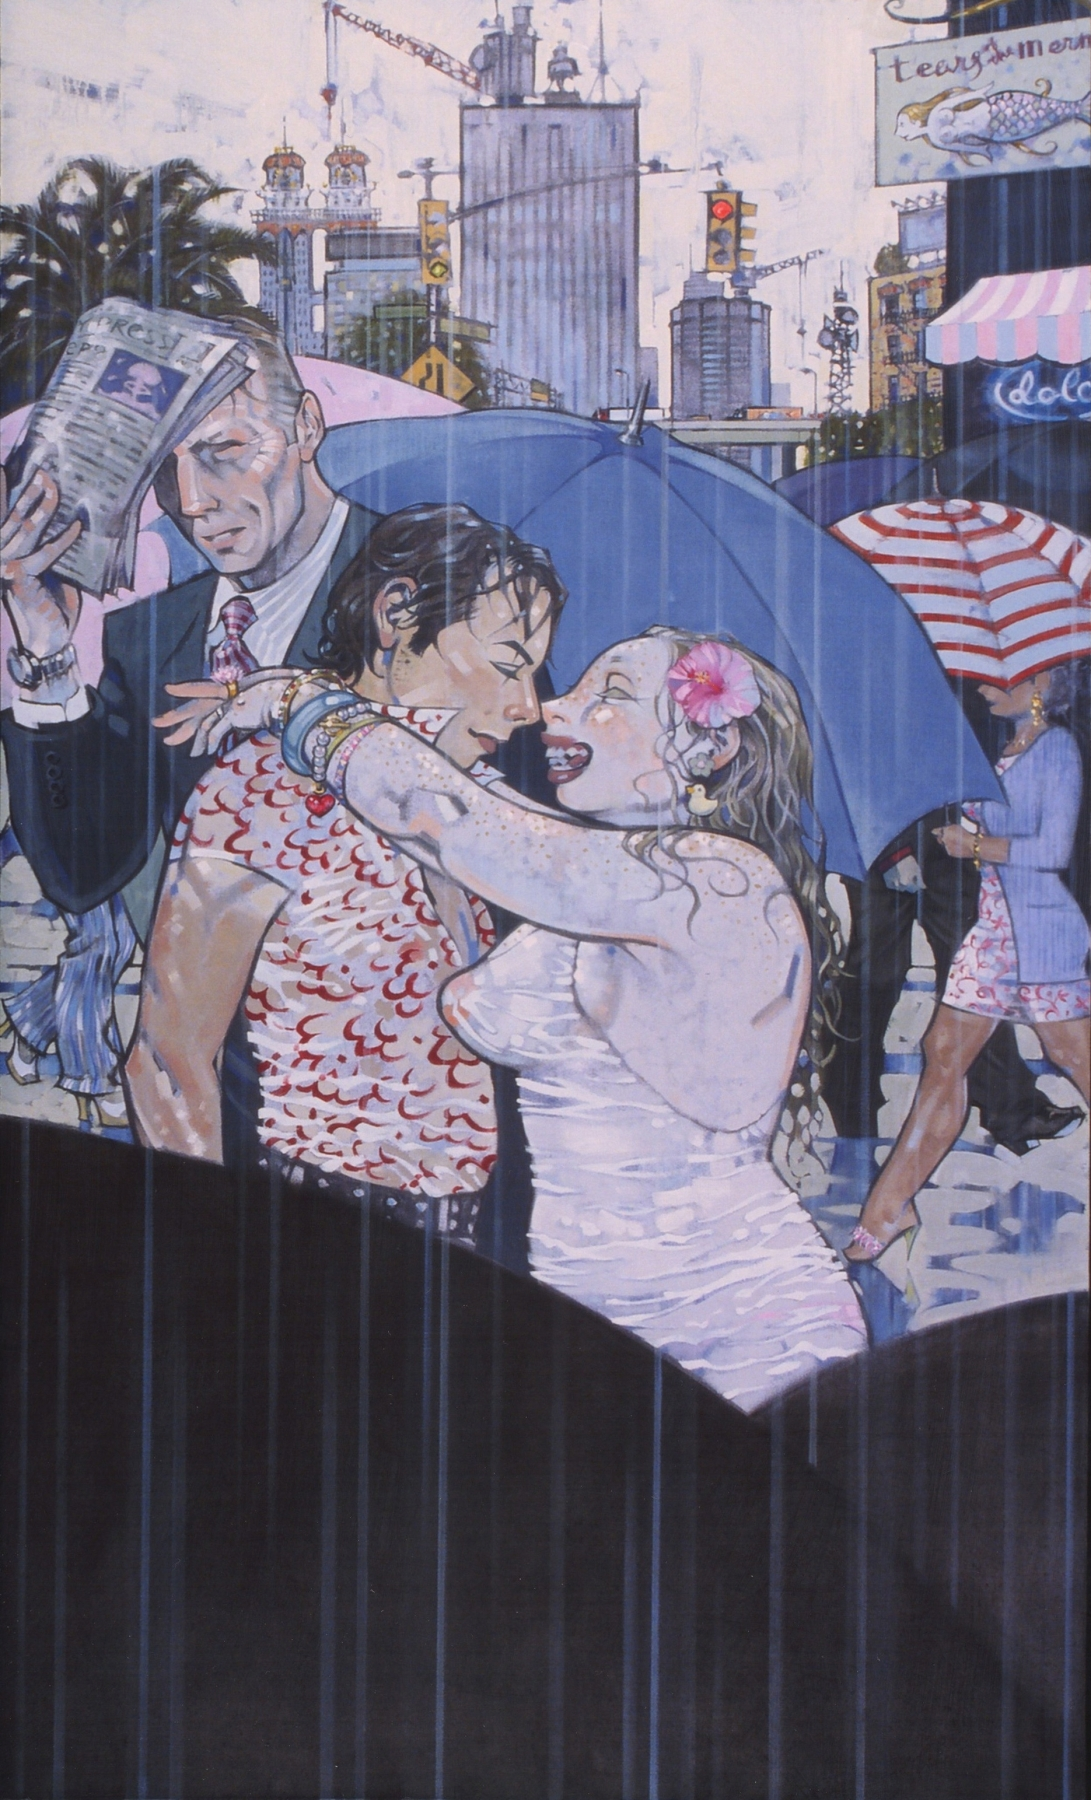 Kiss, 2002, oil on canvas, 68.5 x 40.5 inches, by Taiyo la Paix